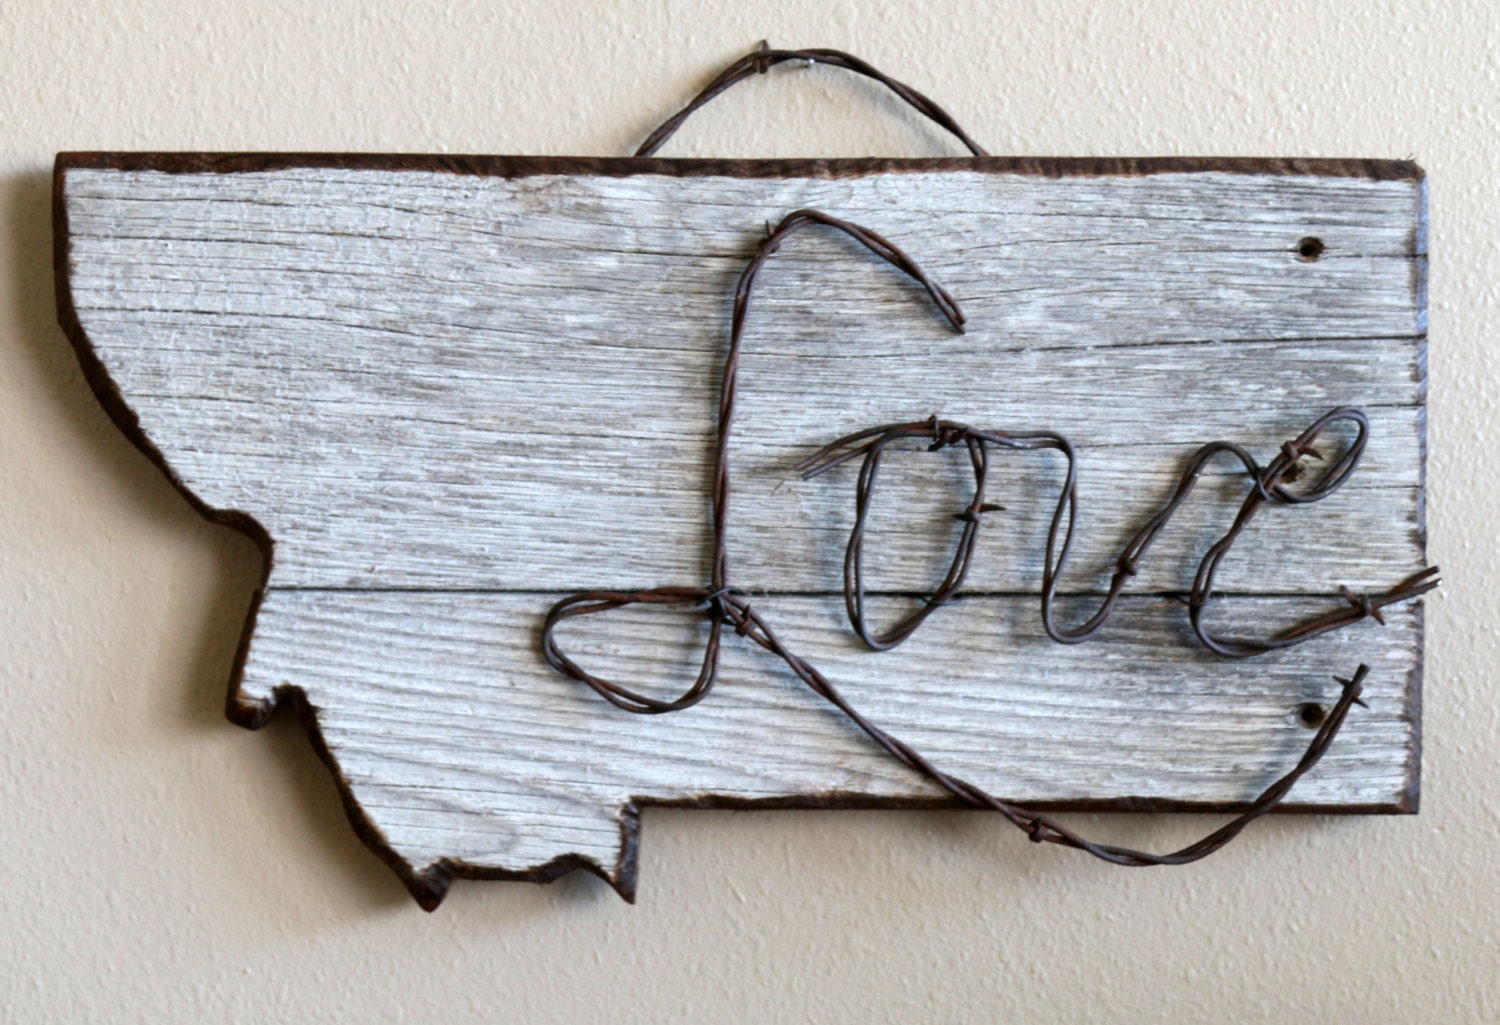 Wire Love Wood Center Autogage Tachometer Item Aut233904 The Auto Gage Tach Series Is One Of Montana Rustic Barnwood Sign With Barbed Reclaimed Rh Mtrusticdesigns Com And